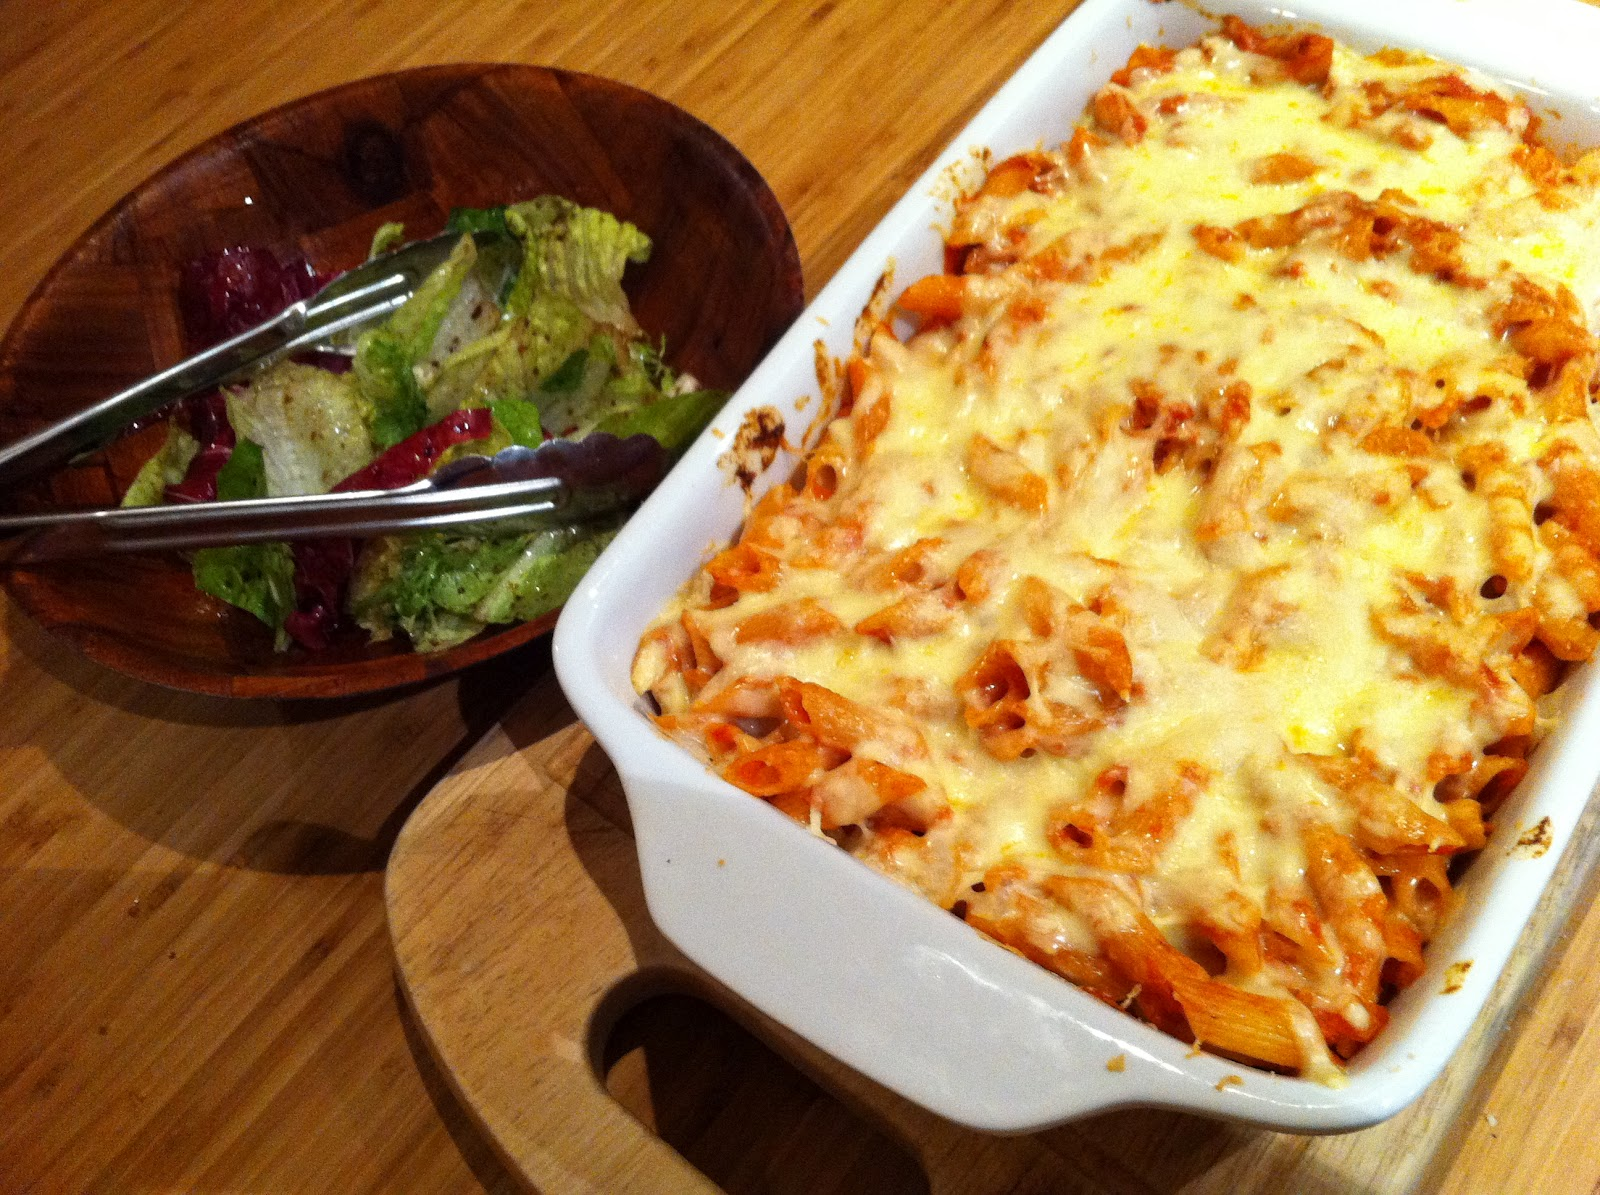 Working Meals for a Working Mum: Tomato and Tuna Pasta Bake